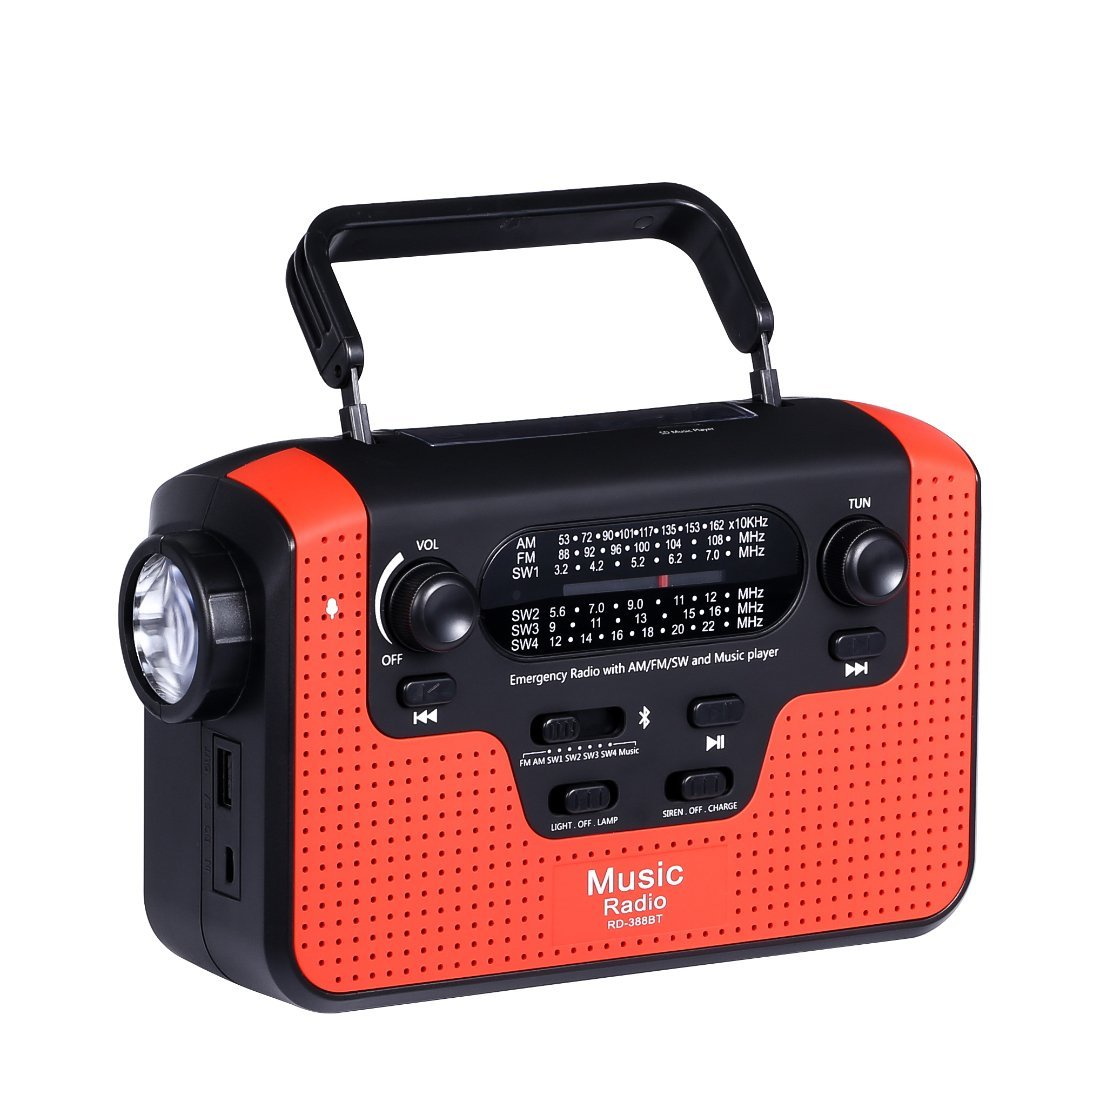 Solar Hand Crank Emergency AM/FM/SW/WB Radio, Bluetooth TF Card Speakers with Lights, LED Flashlight and Reading Camping Lamp, Battery Radio Portable and 2300mAh Power Bank Cell Phone Charger (red)